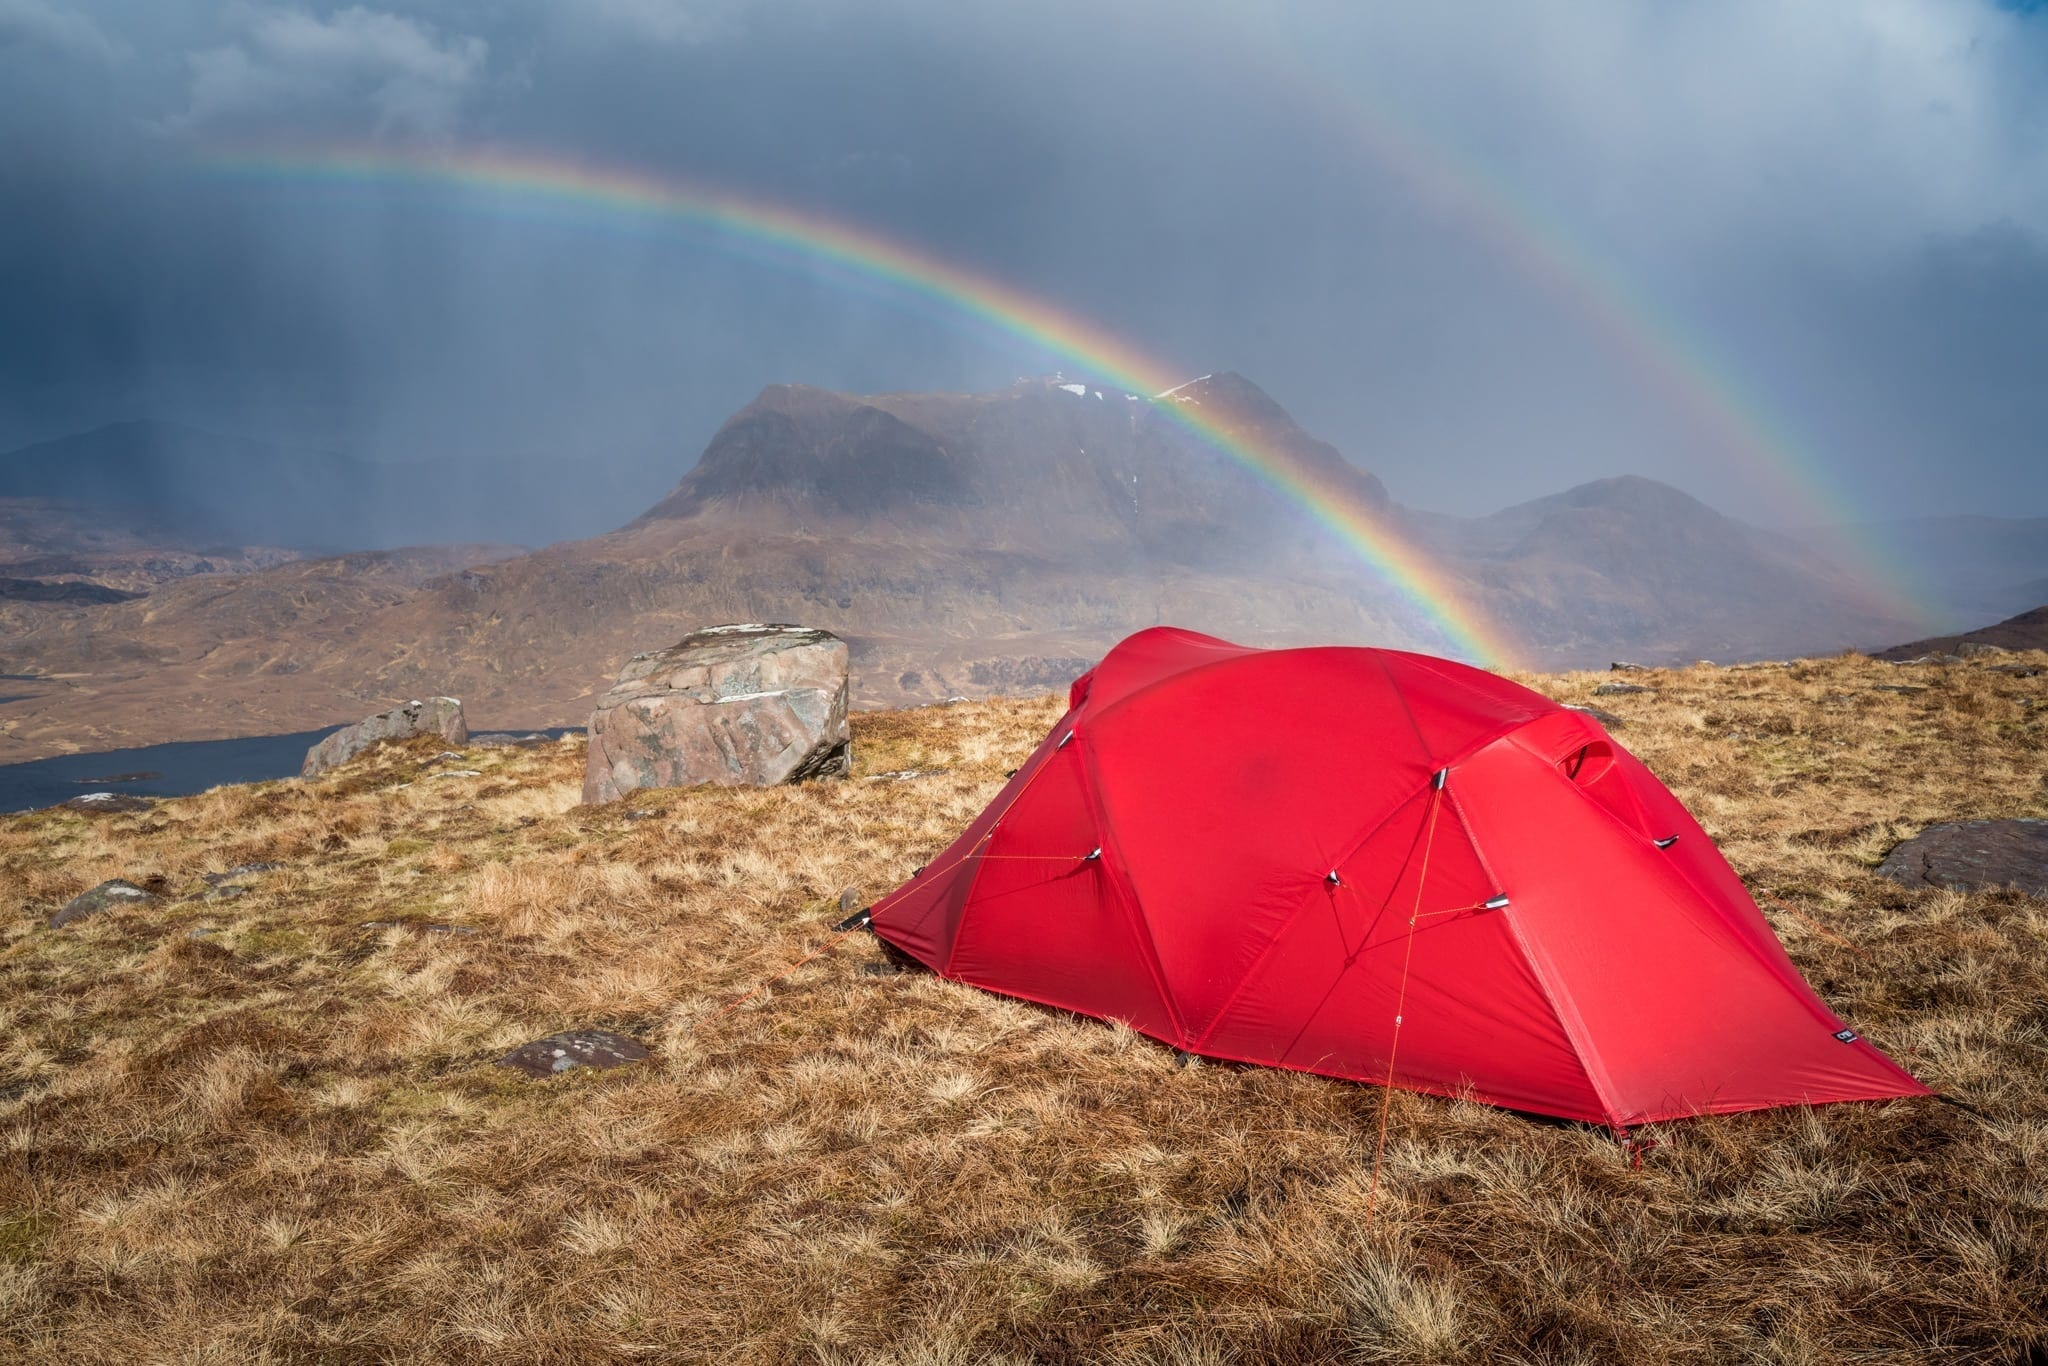 Stac Polliadh Wild Camping Rainbow - Assynt Wild Camping Photography Workshop